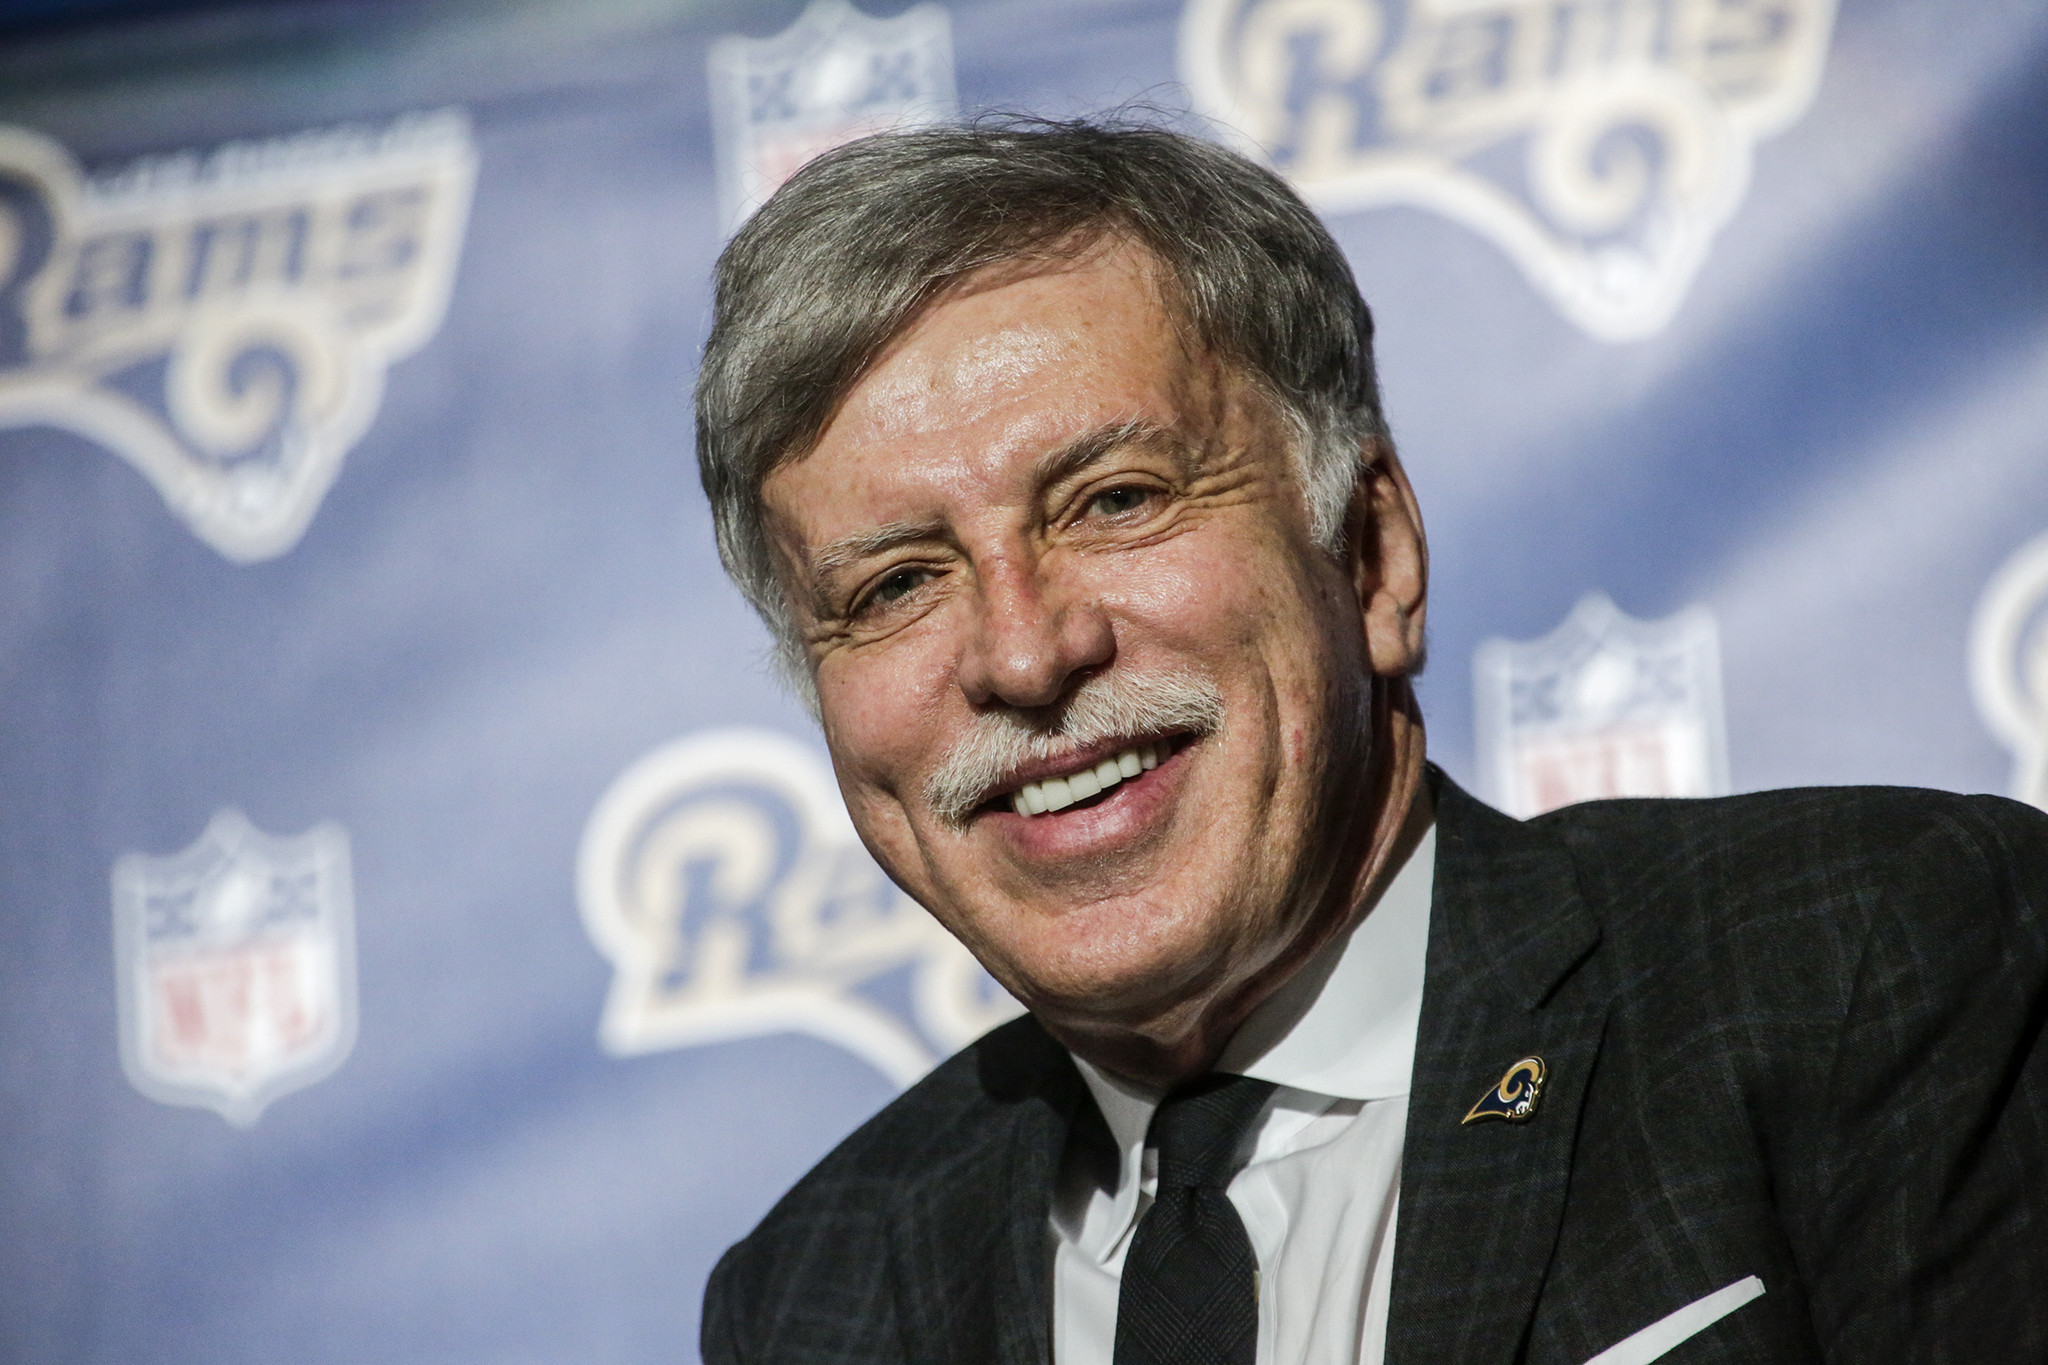 la-sp-sn-rams-owner-stan-kroenke-ranch-2